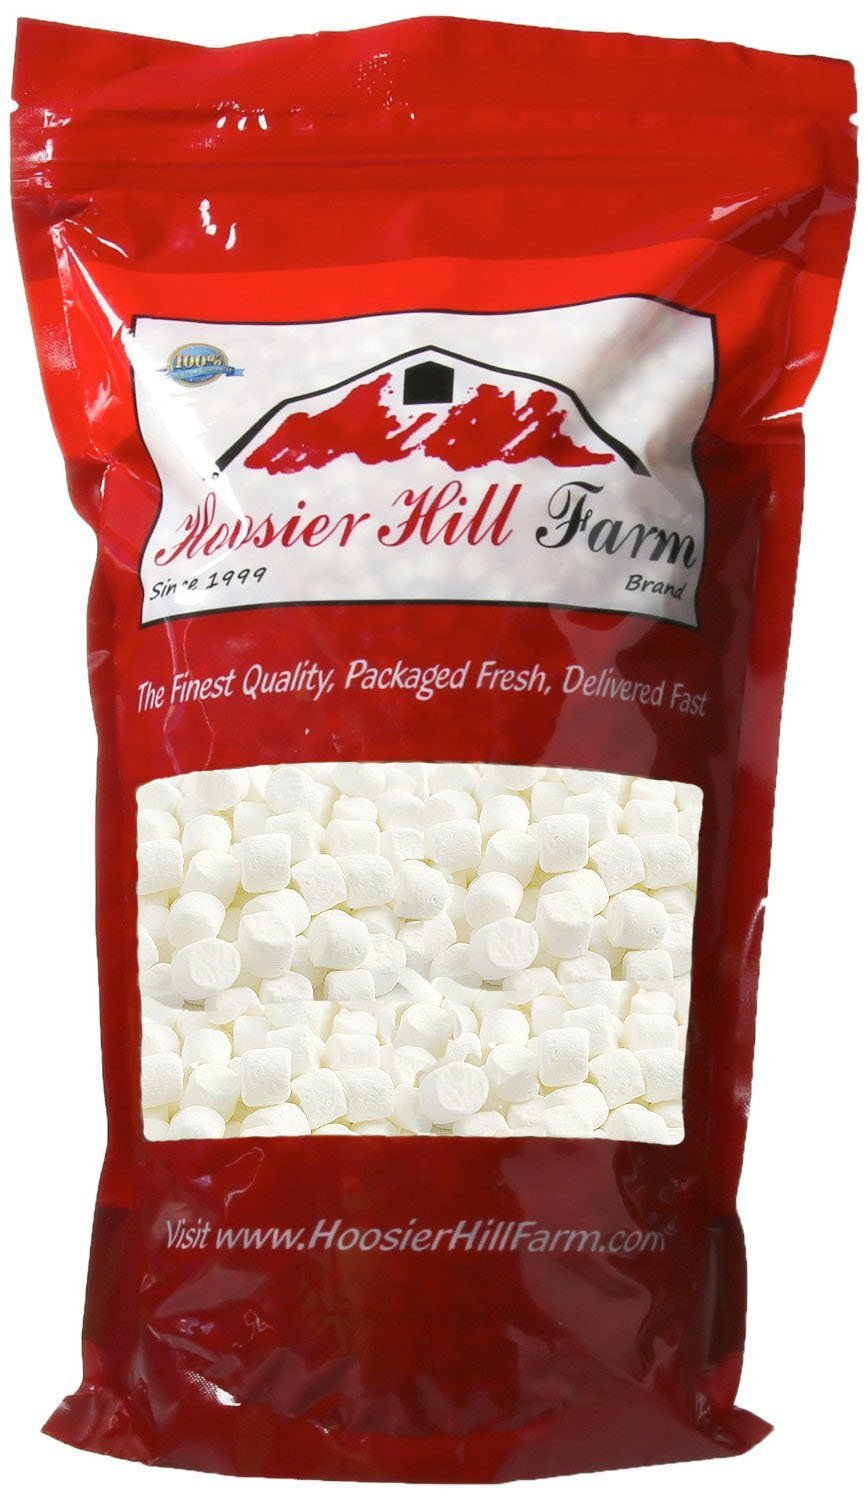 Hoosier Hill Farm White Mini Soft Marshmallows (2 lbs)